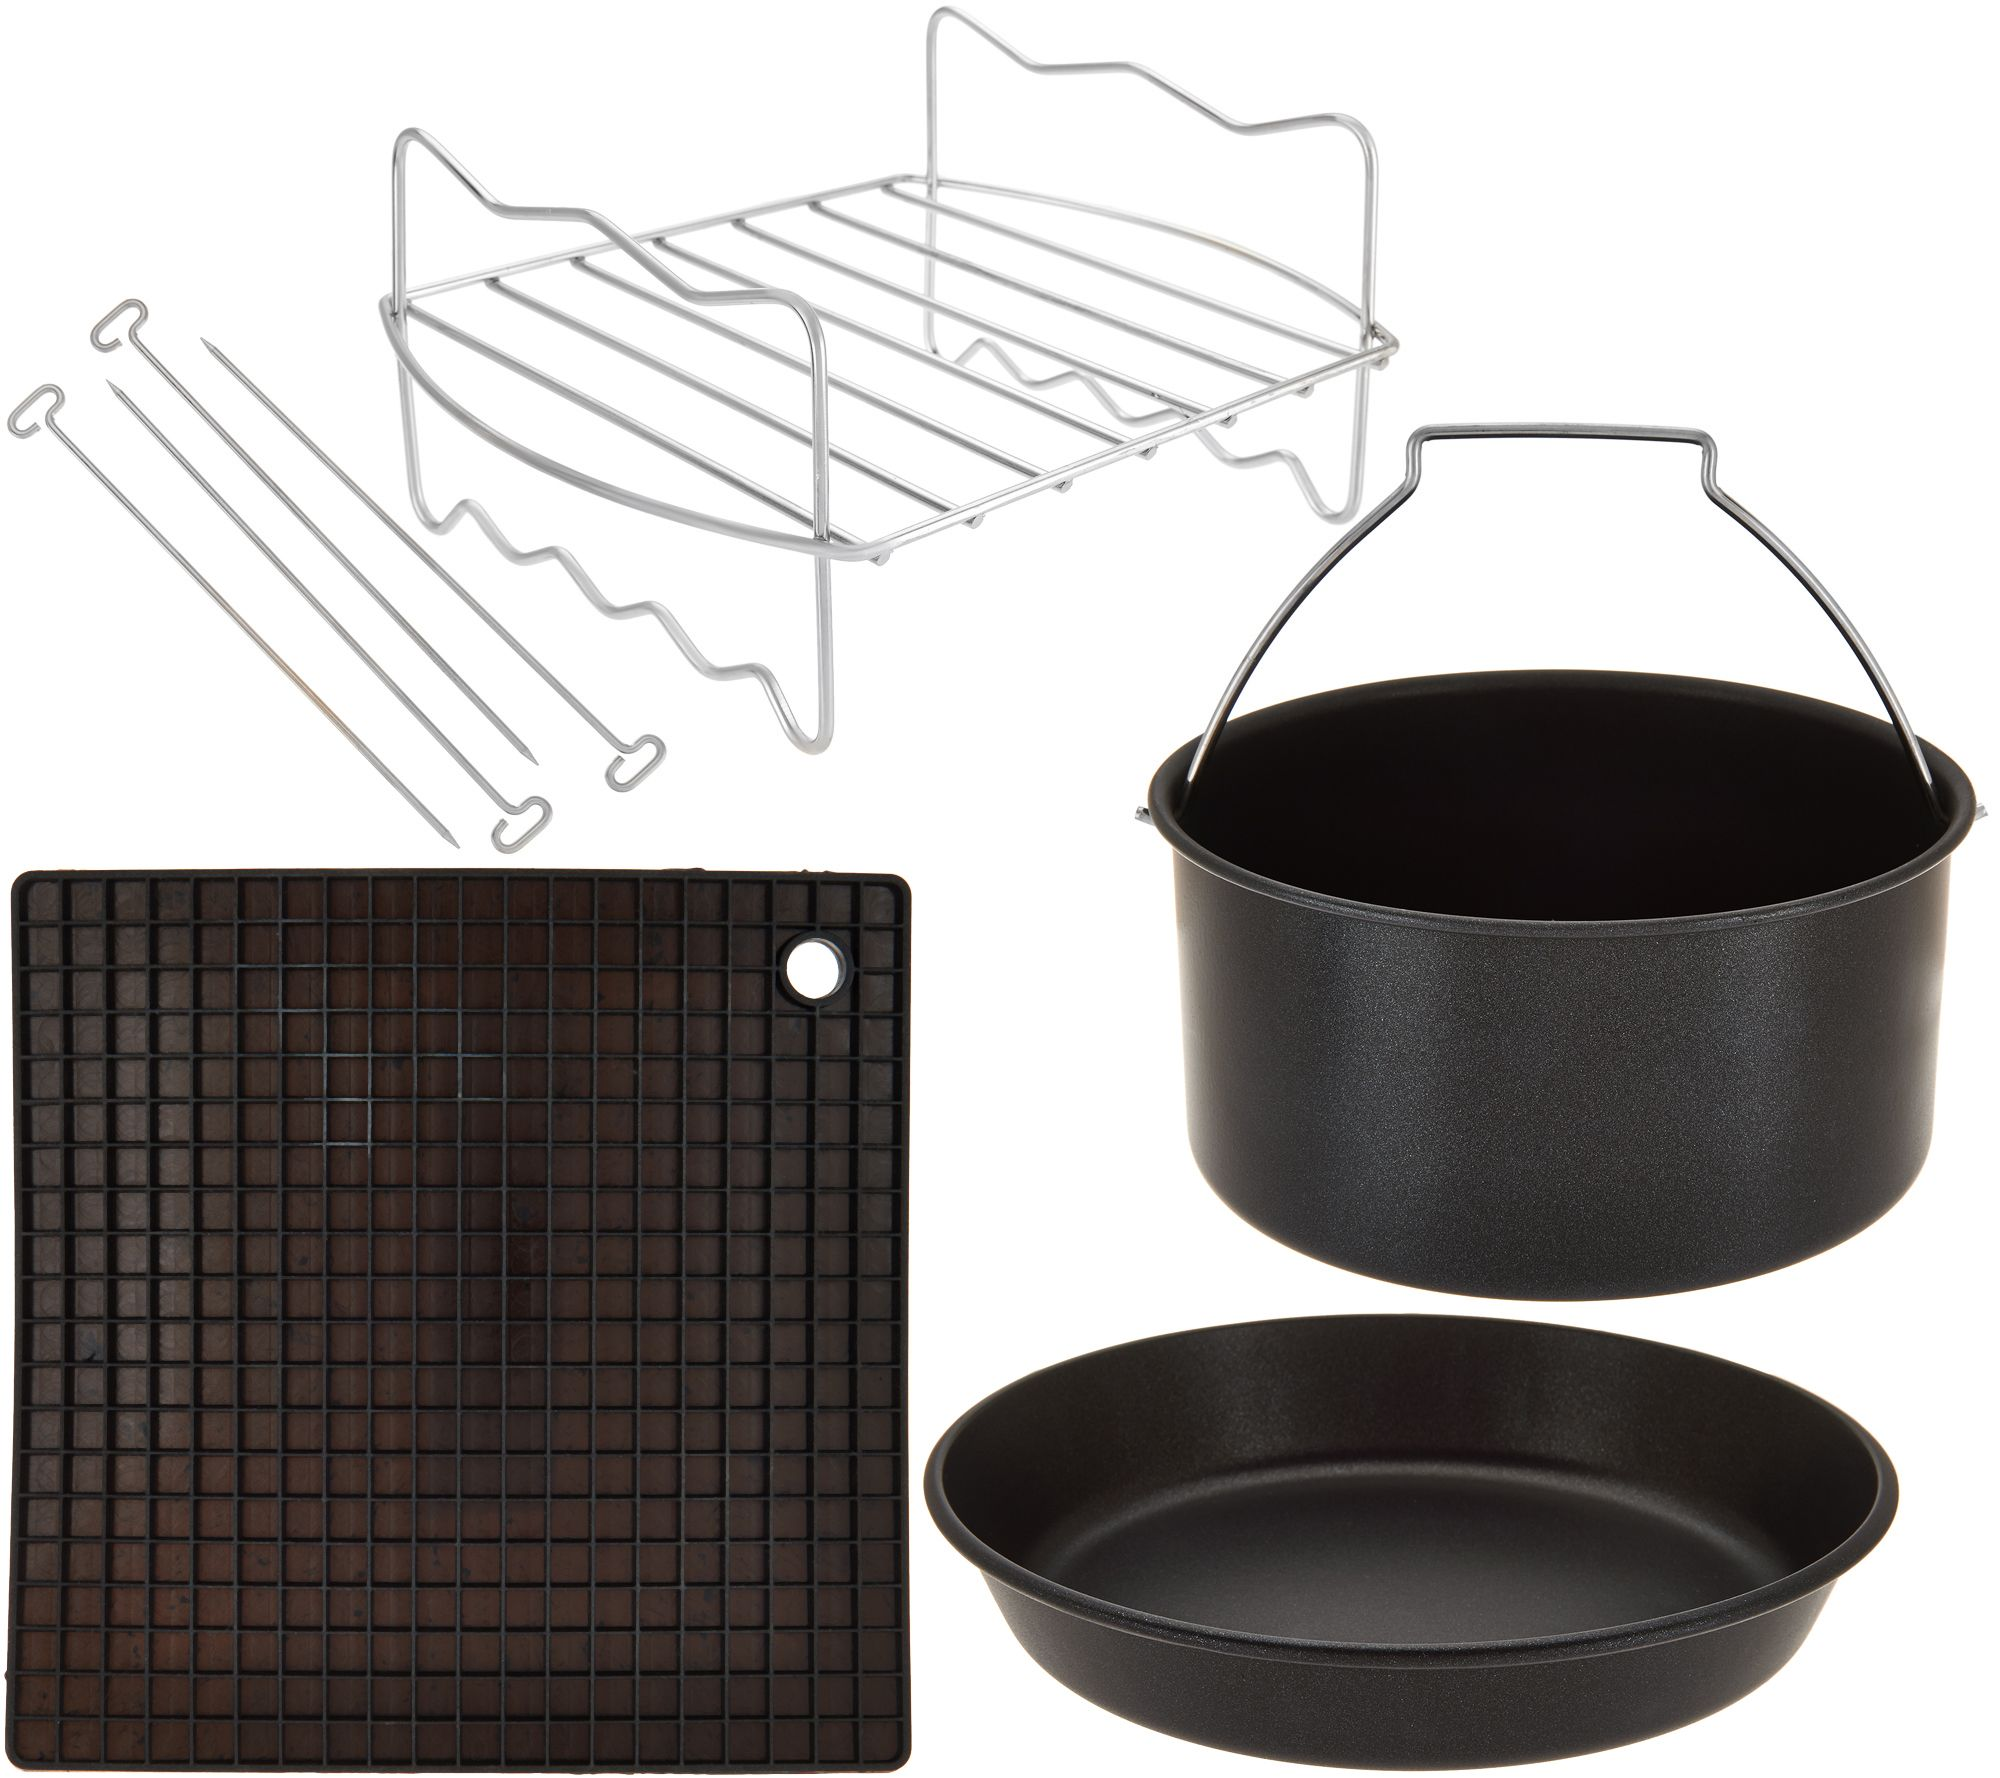 cook s essentials air fryer accessory kit page 1 qvc